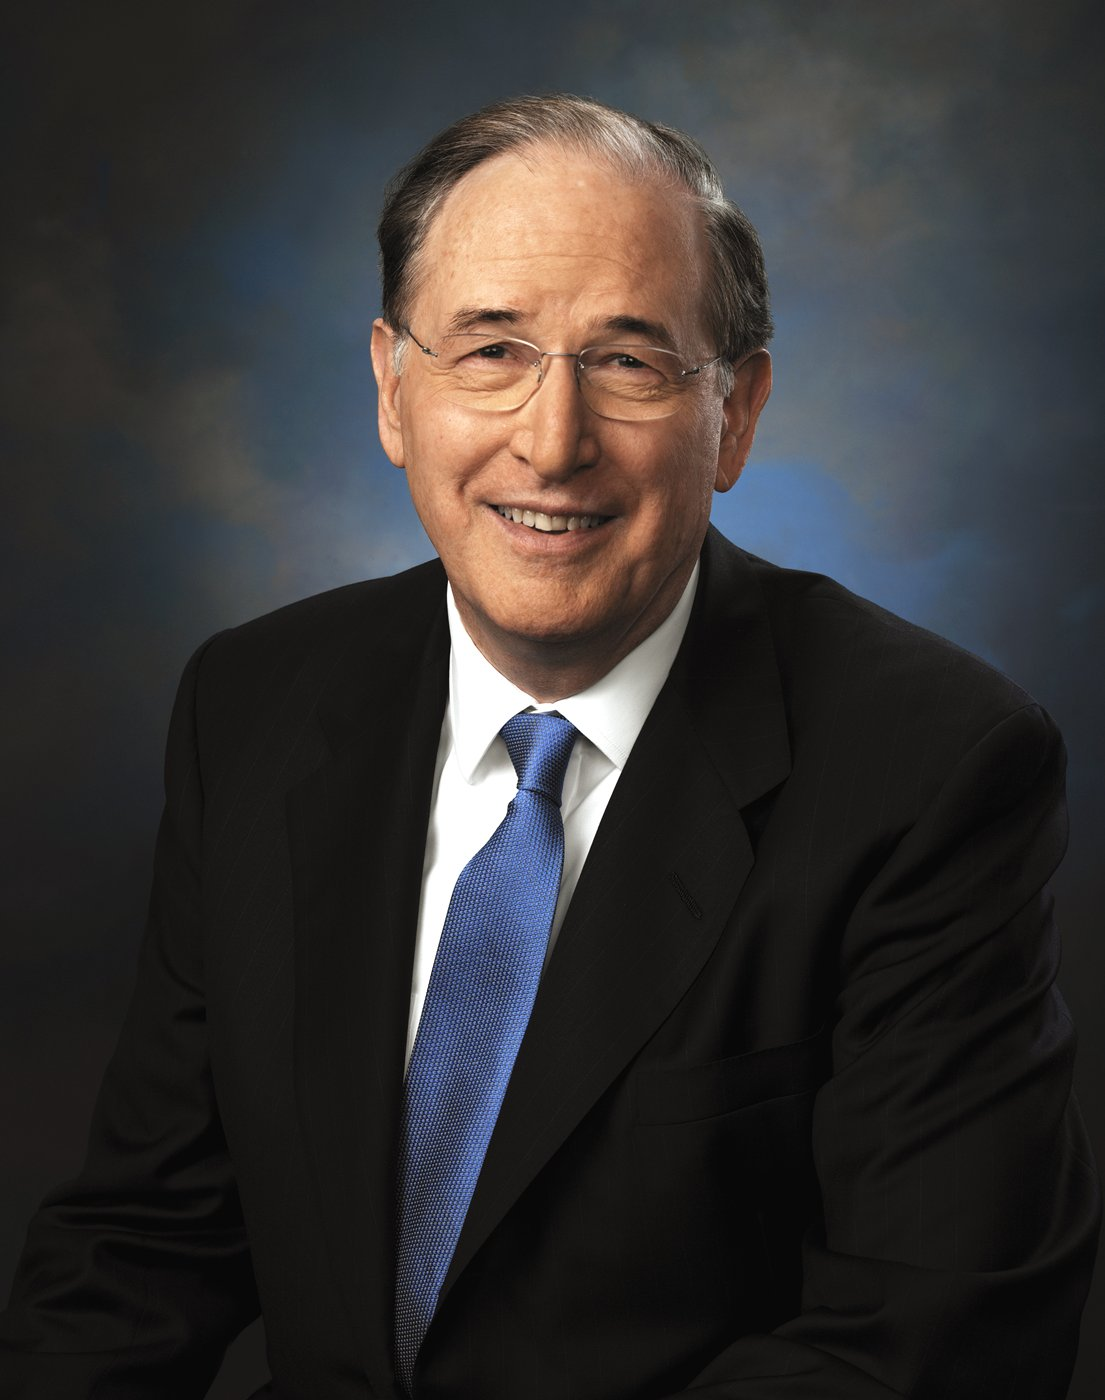 jay rockefeller height